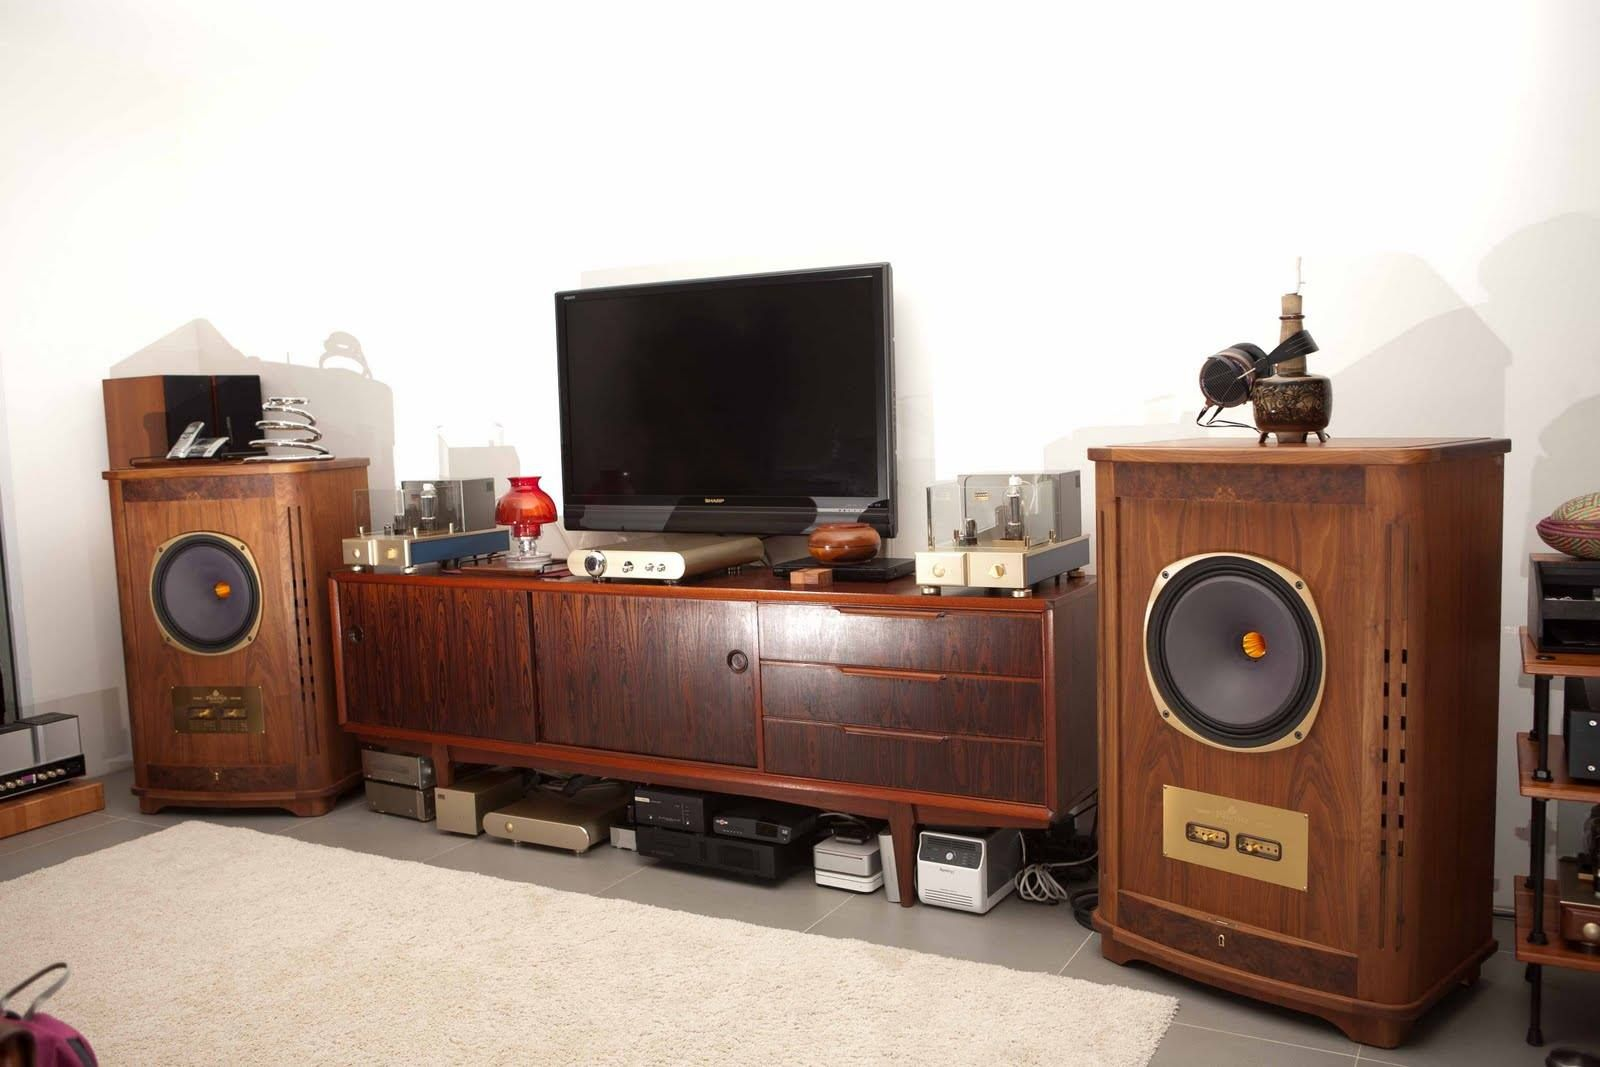 High End Audio For The Passionates Beautiful setup with the WAVAC PR-T1 preamplifier and MD-805 mono block amplifiers driving a pair of TANNOY Canterbury speakers.